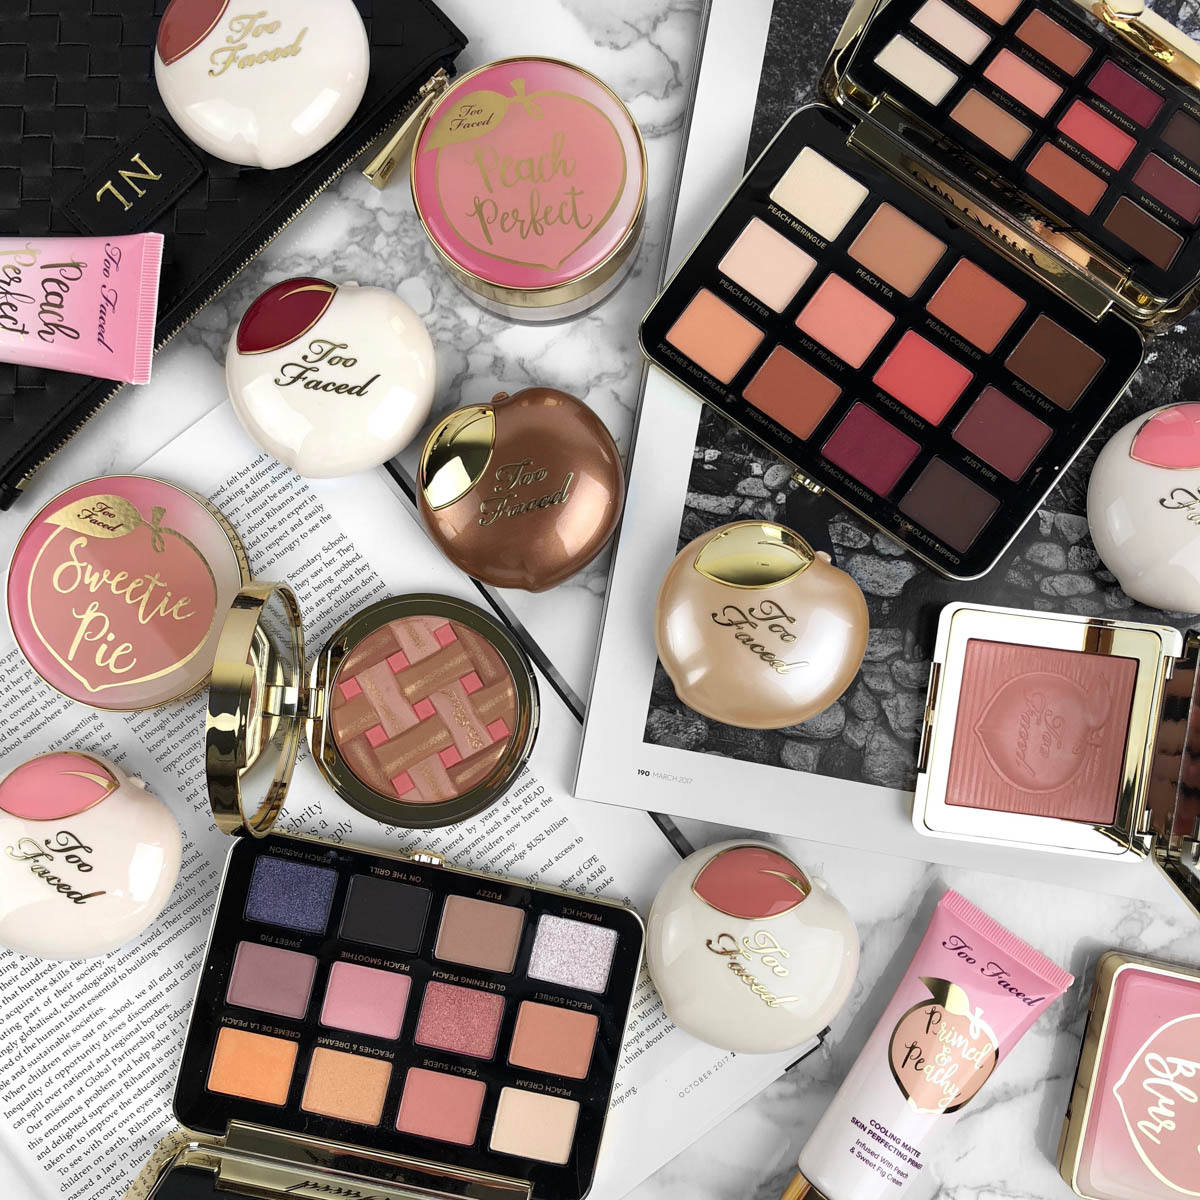 Best Too Faced Cosmetics Products